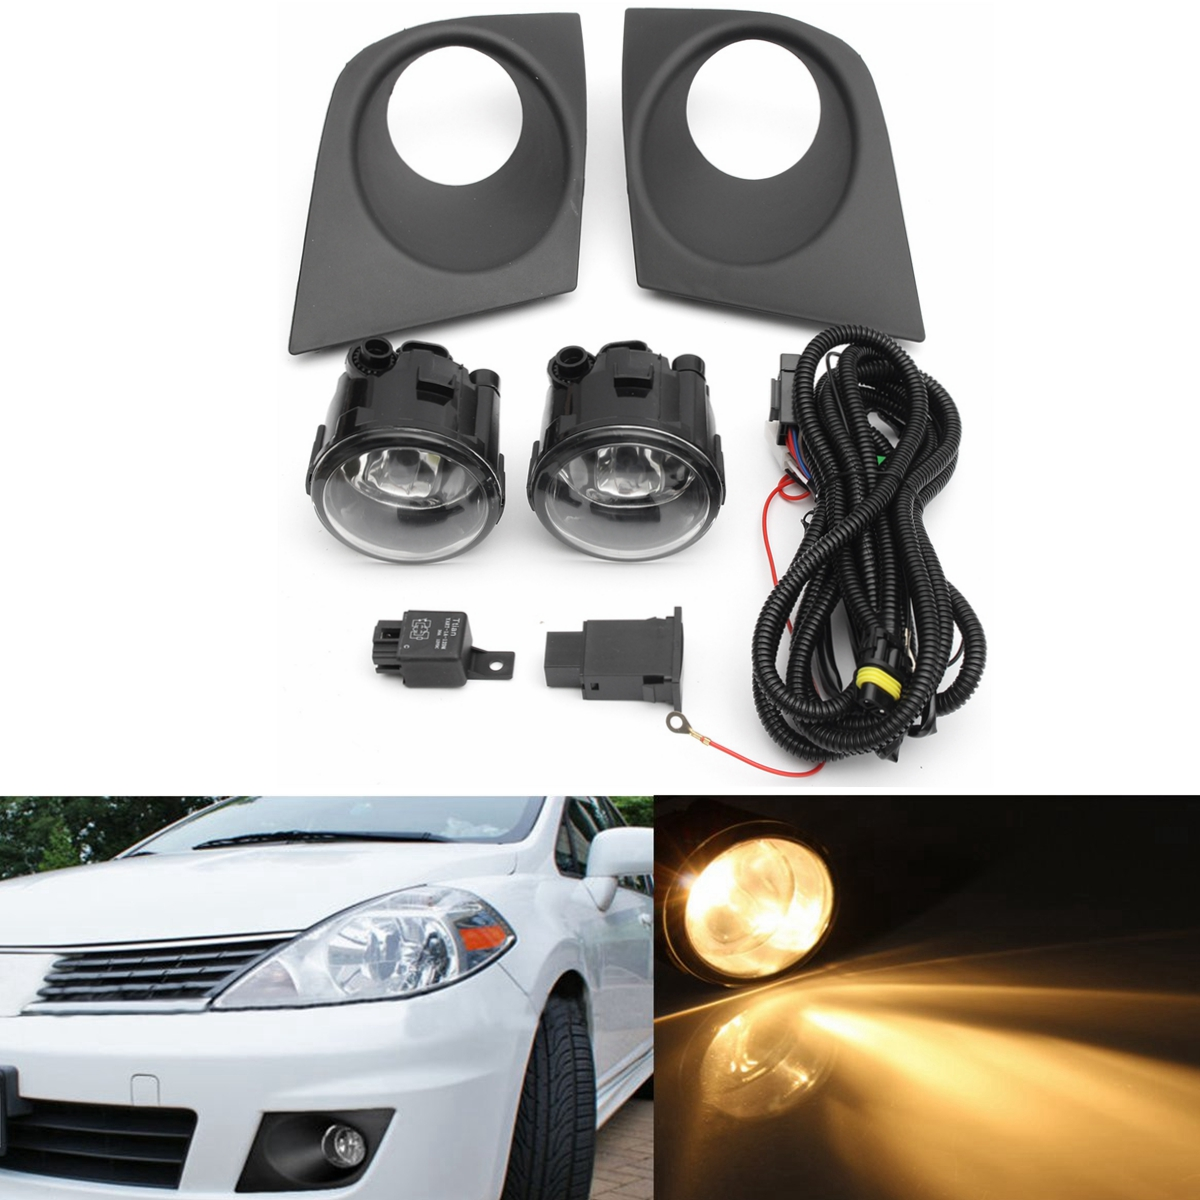 medium resolution of 1 pair car front bumper grille h11 fog light bulb with switch wire for nissan versa 2007 2008 2009 2010 2011 fog lamps